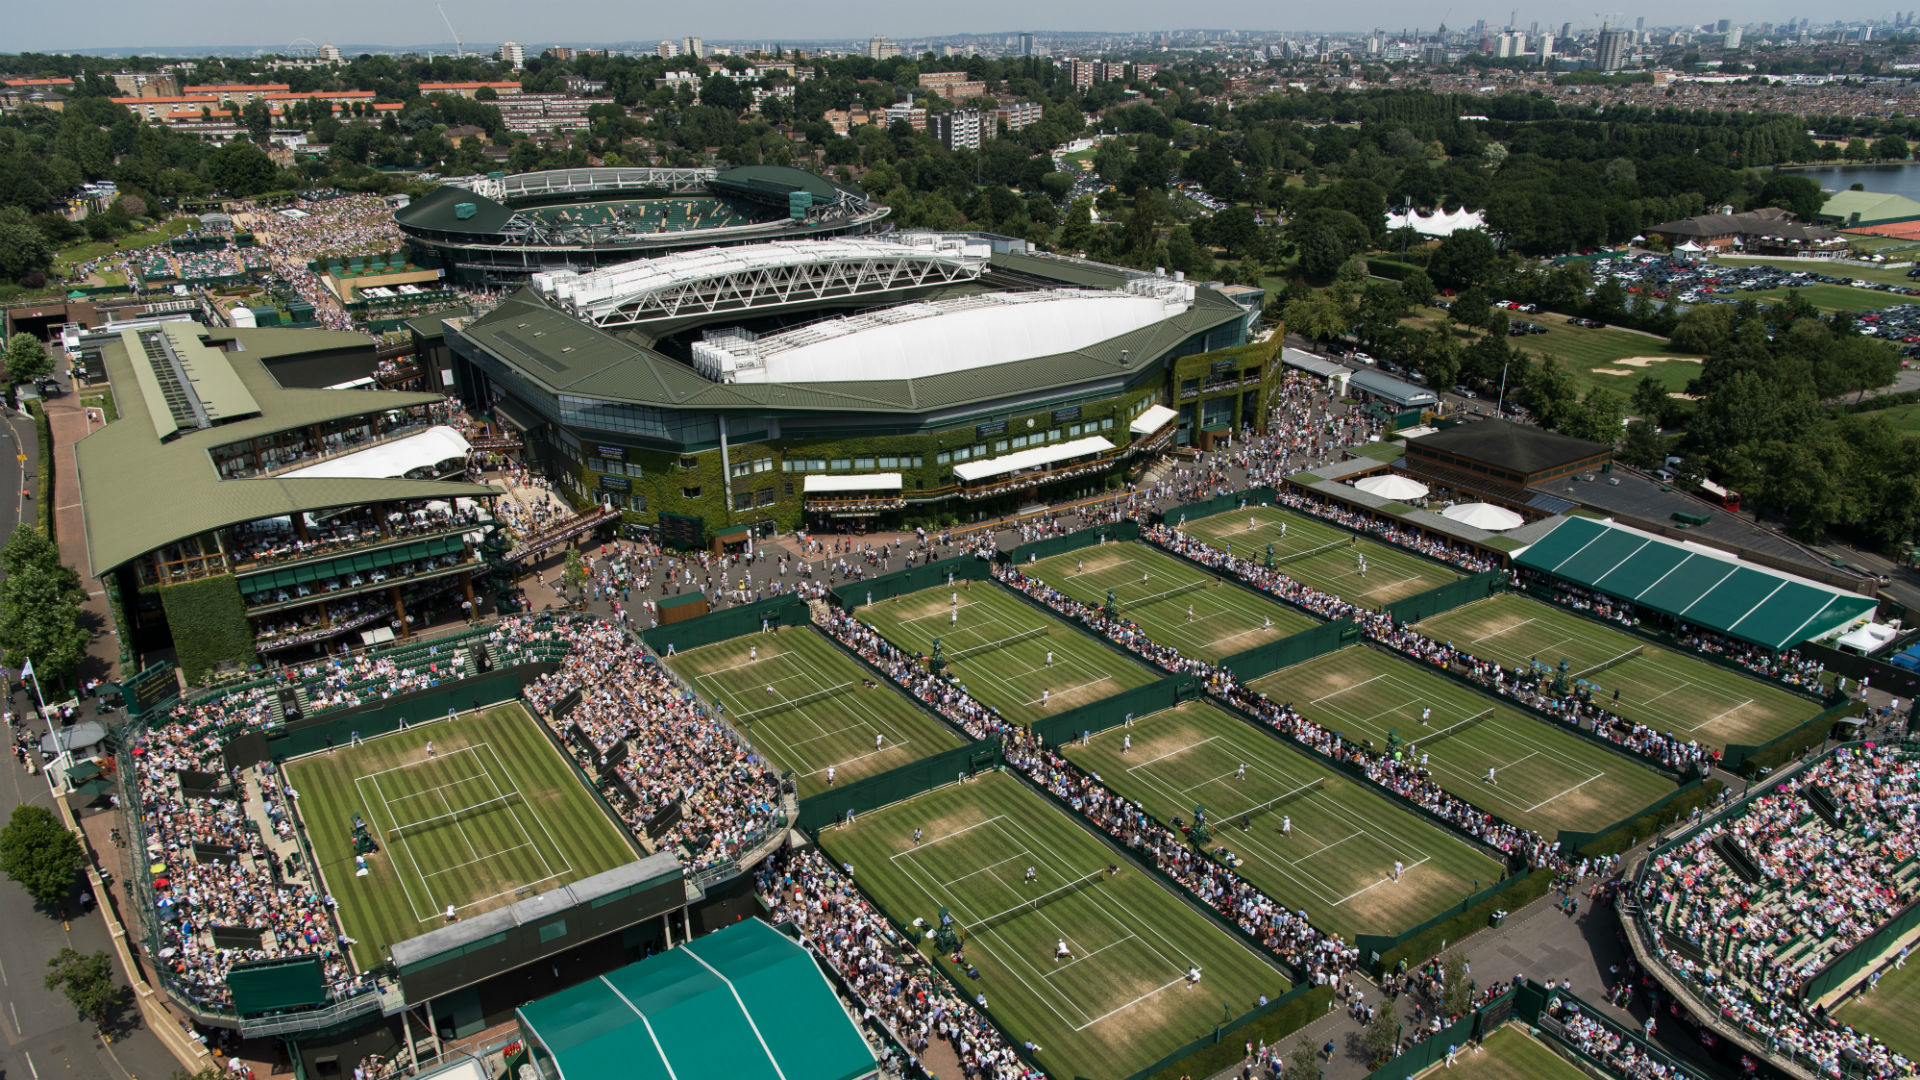 san francisco 0779e 96653 ... the grounds with the London skyline in the background on the 4th day of  play at The Championships 2017 at The All England Lawn Tennis Club,  Wimbledon.